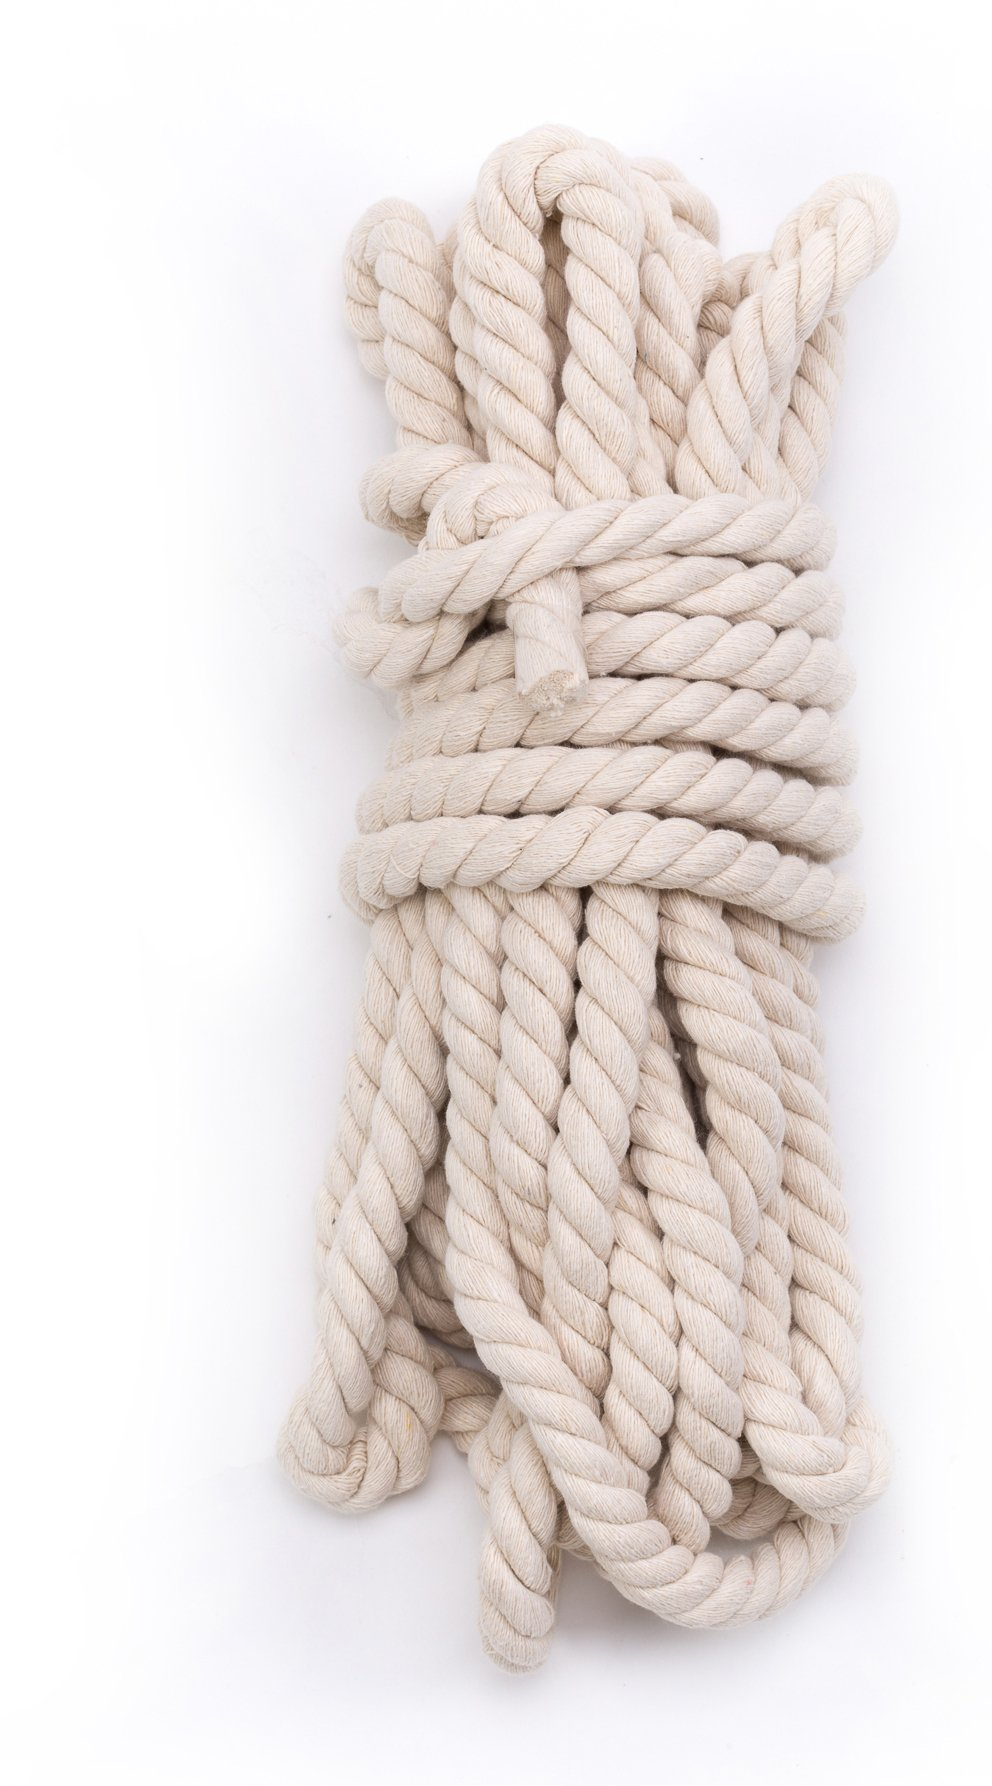 Tosnail 33 Feet 5/8'' Natural Triple-Strand Twisted Cotton Rope by Tosnail